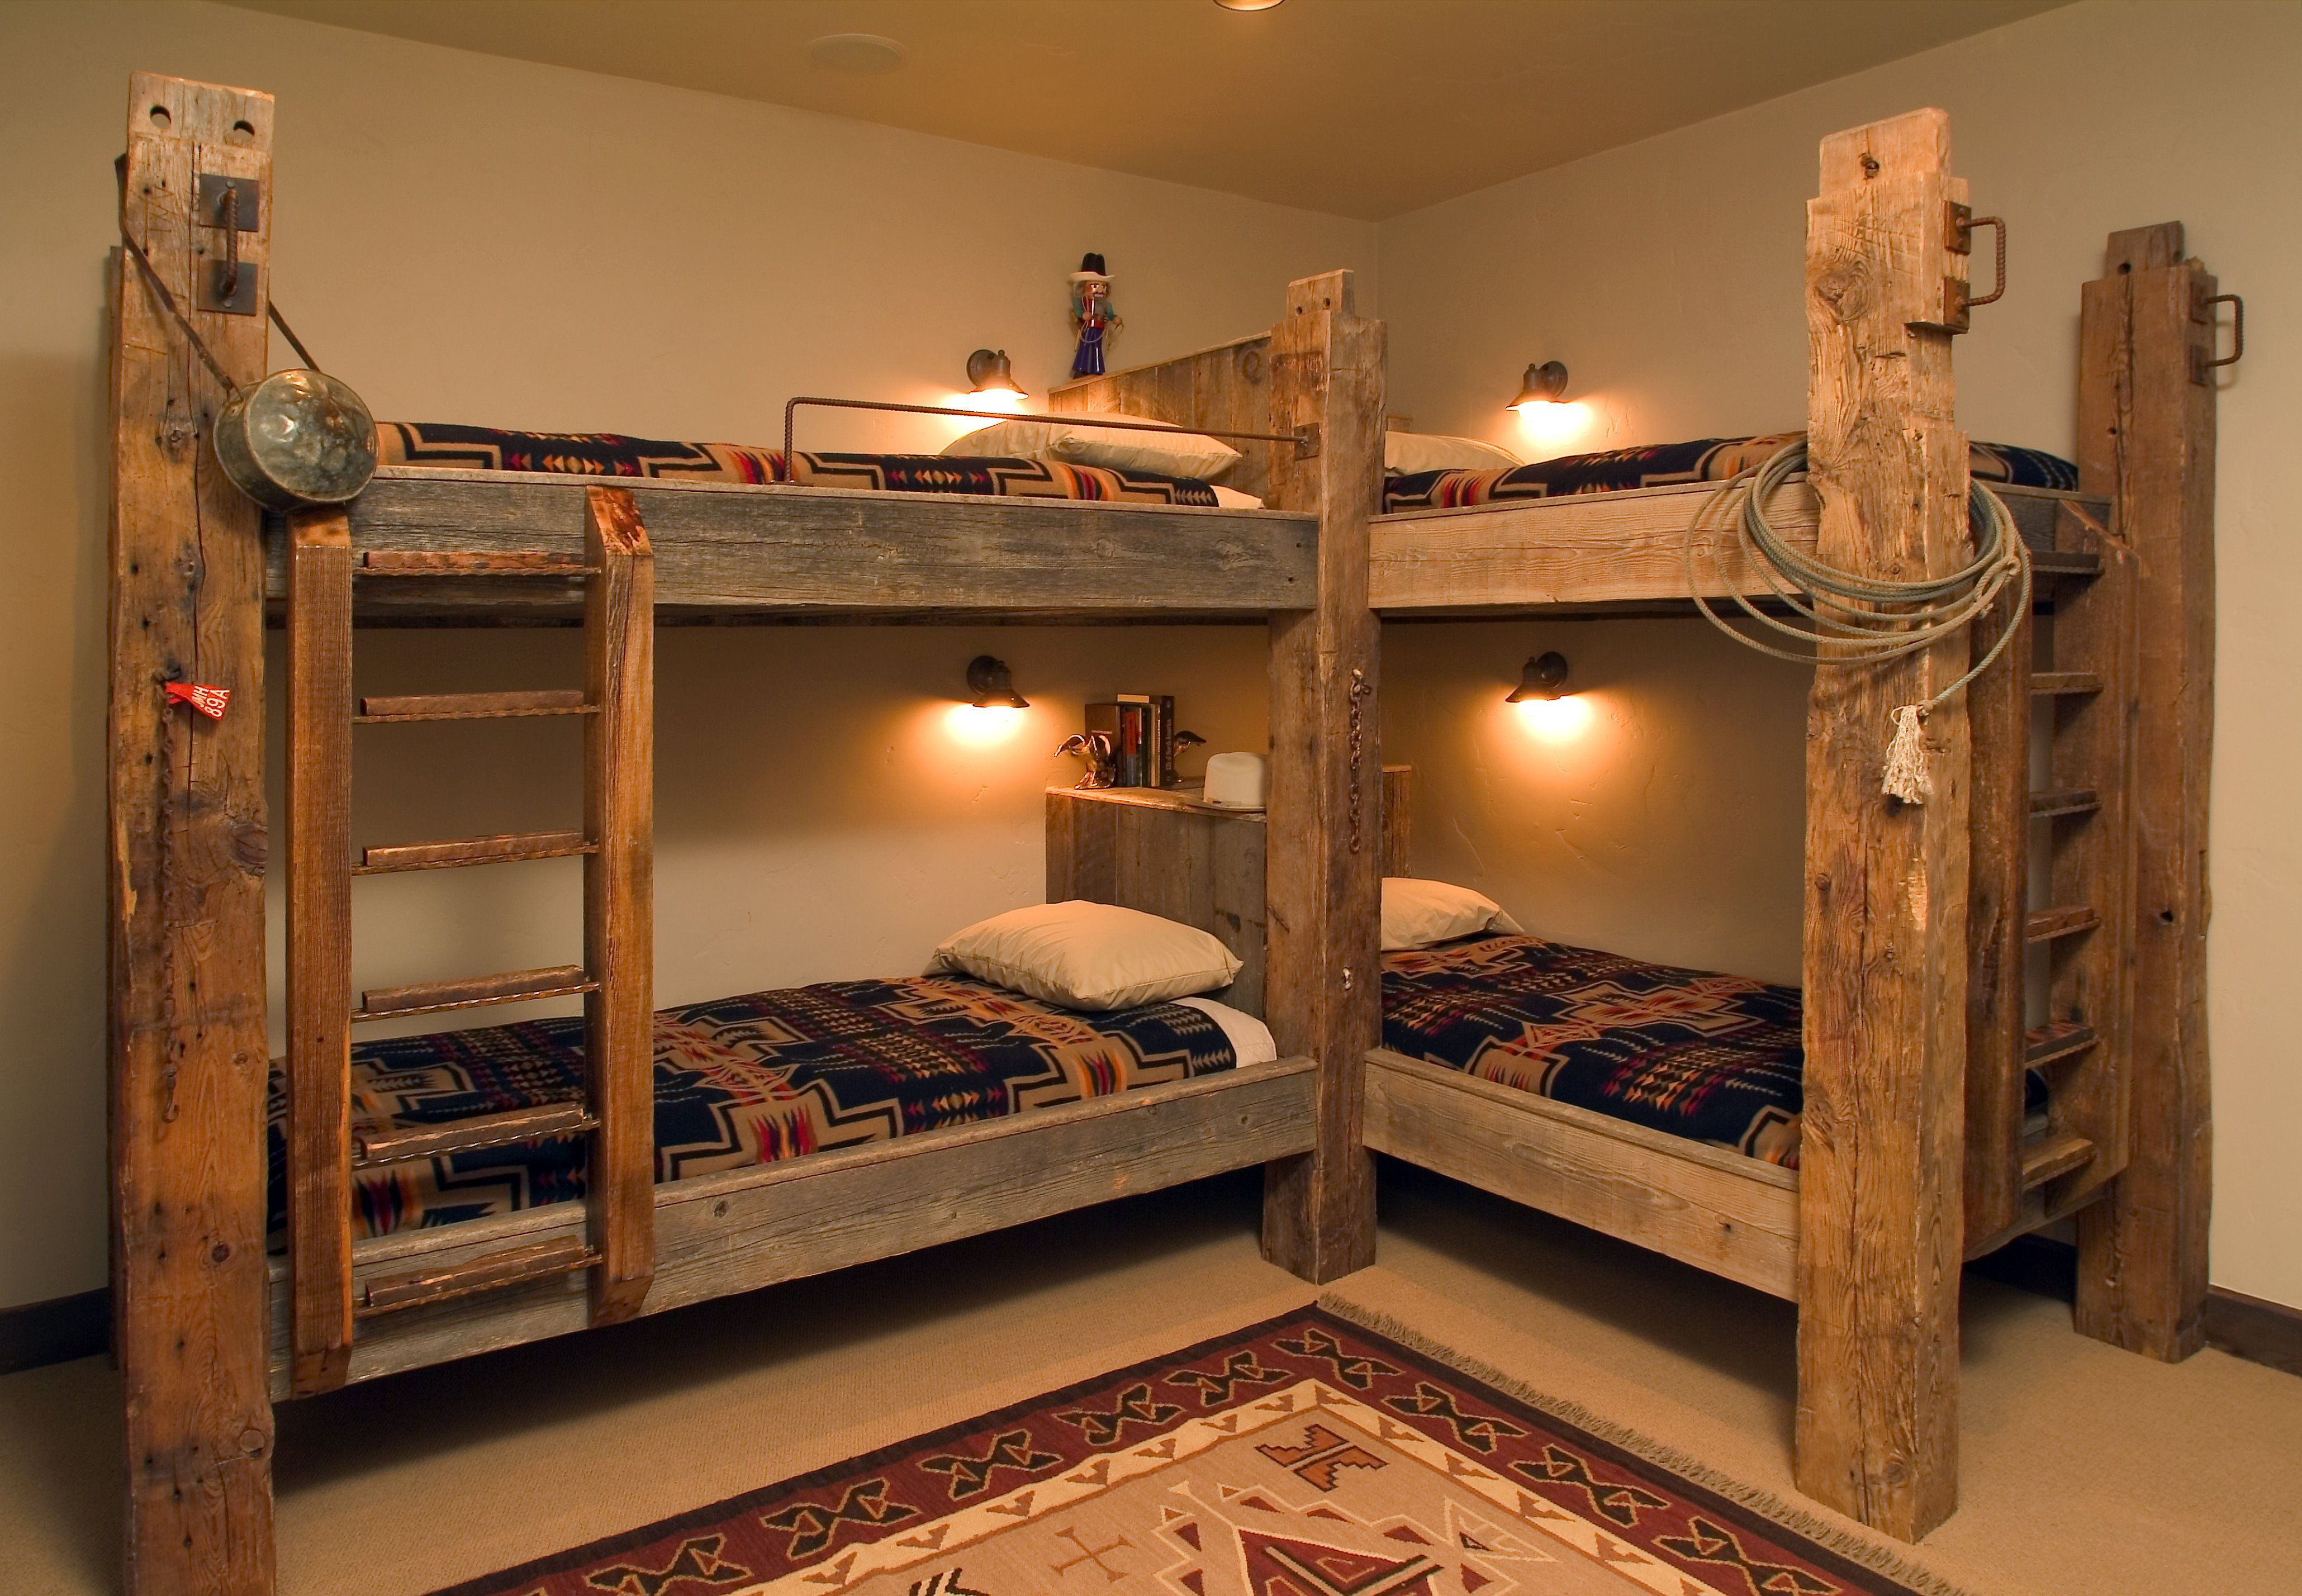 5 wonderful ideas of triple bunk beds for your kids on wonderful ideas of bunk beds for your kids bedroom id=23376